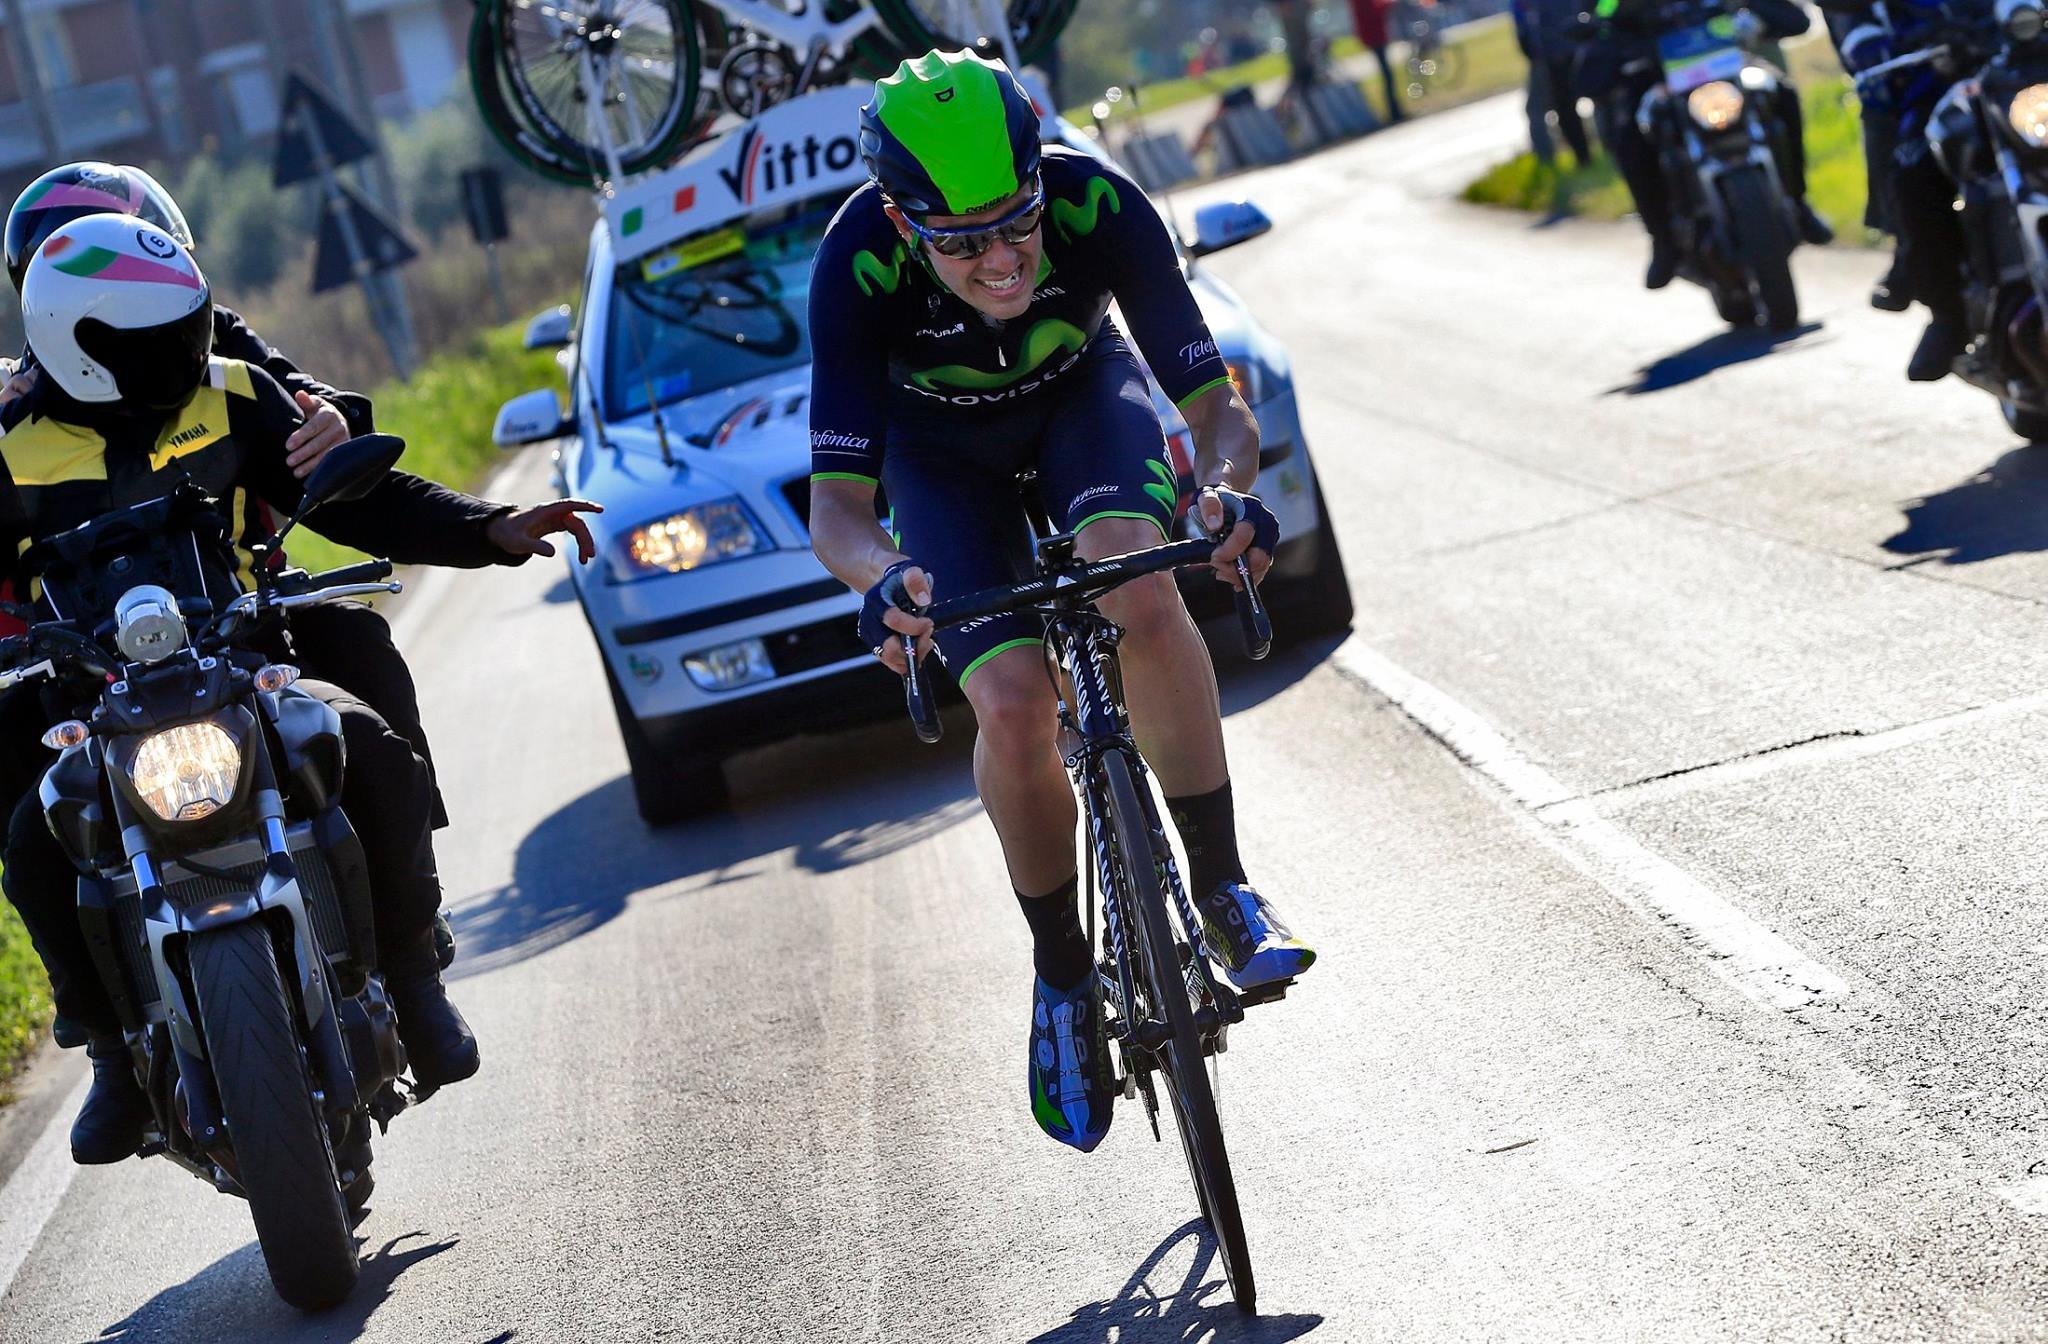 dowsett-tirreno-adriatico-movistar-breakaway